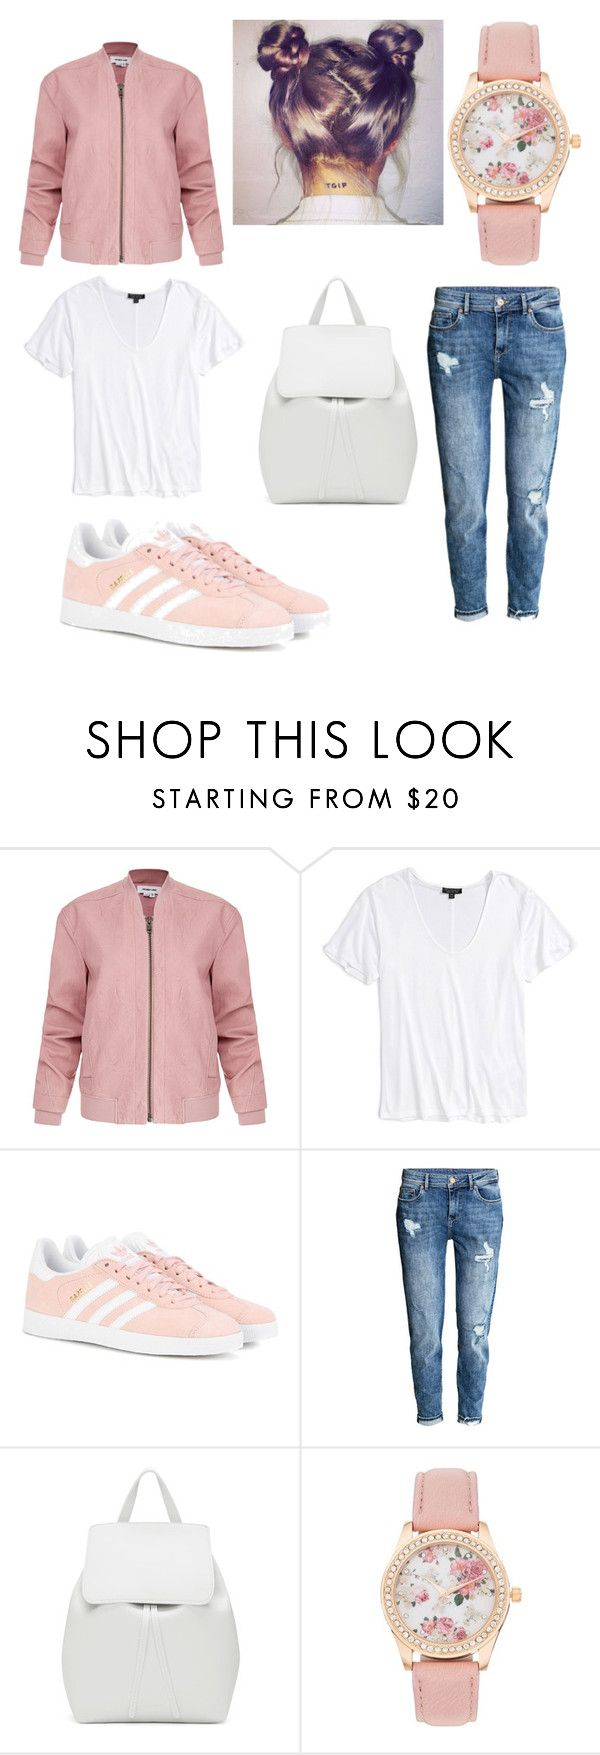 """Untitled #1"" by elizabeth-sulanova ❤ liked on Polyvore featuring Helmut Lang, Topshop, adidas Originals and Mansur Gavriel"